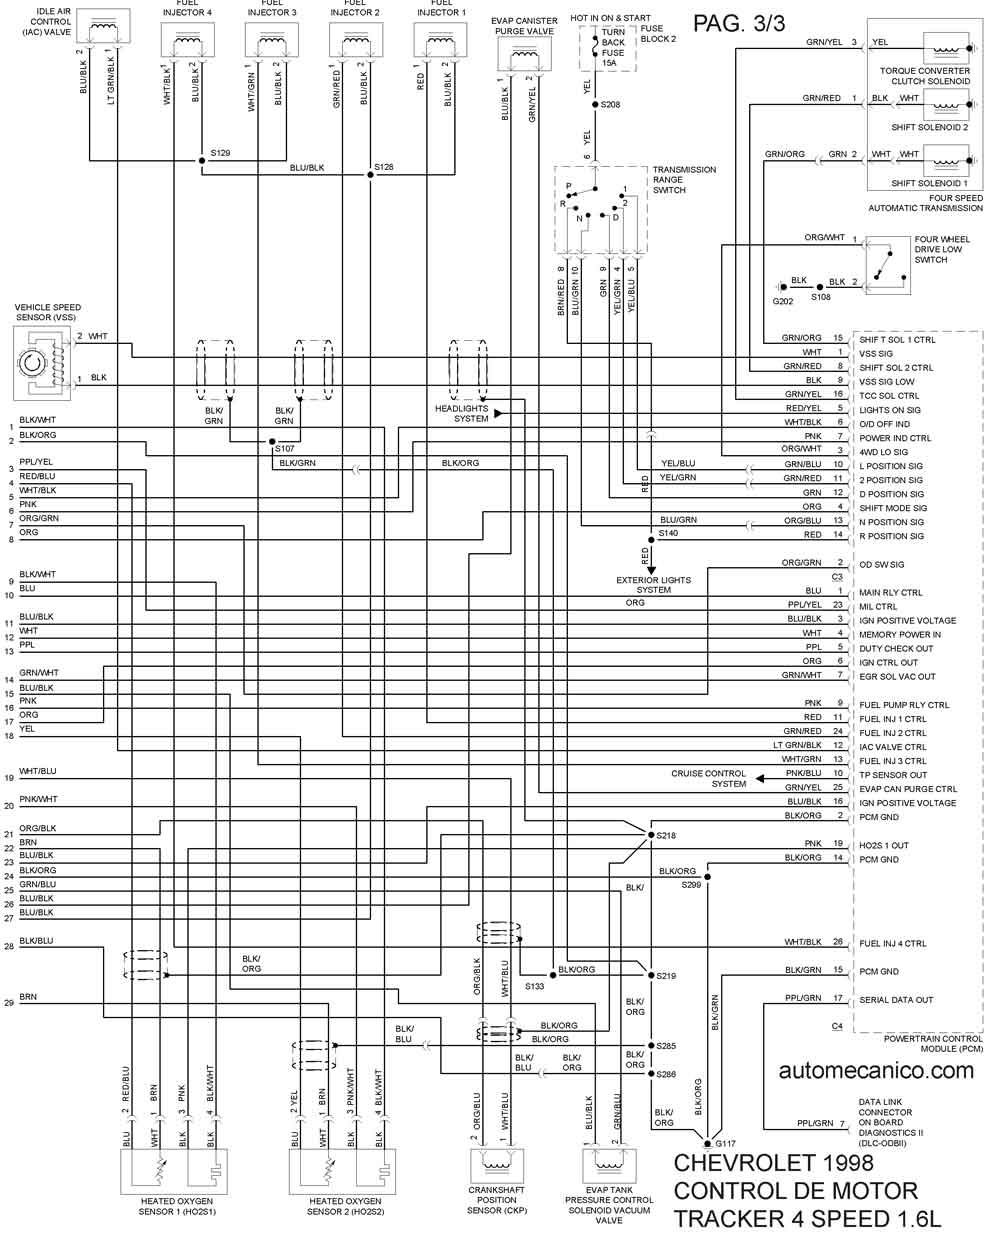 Diagrama Electrico Chevy 2002